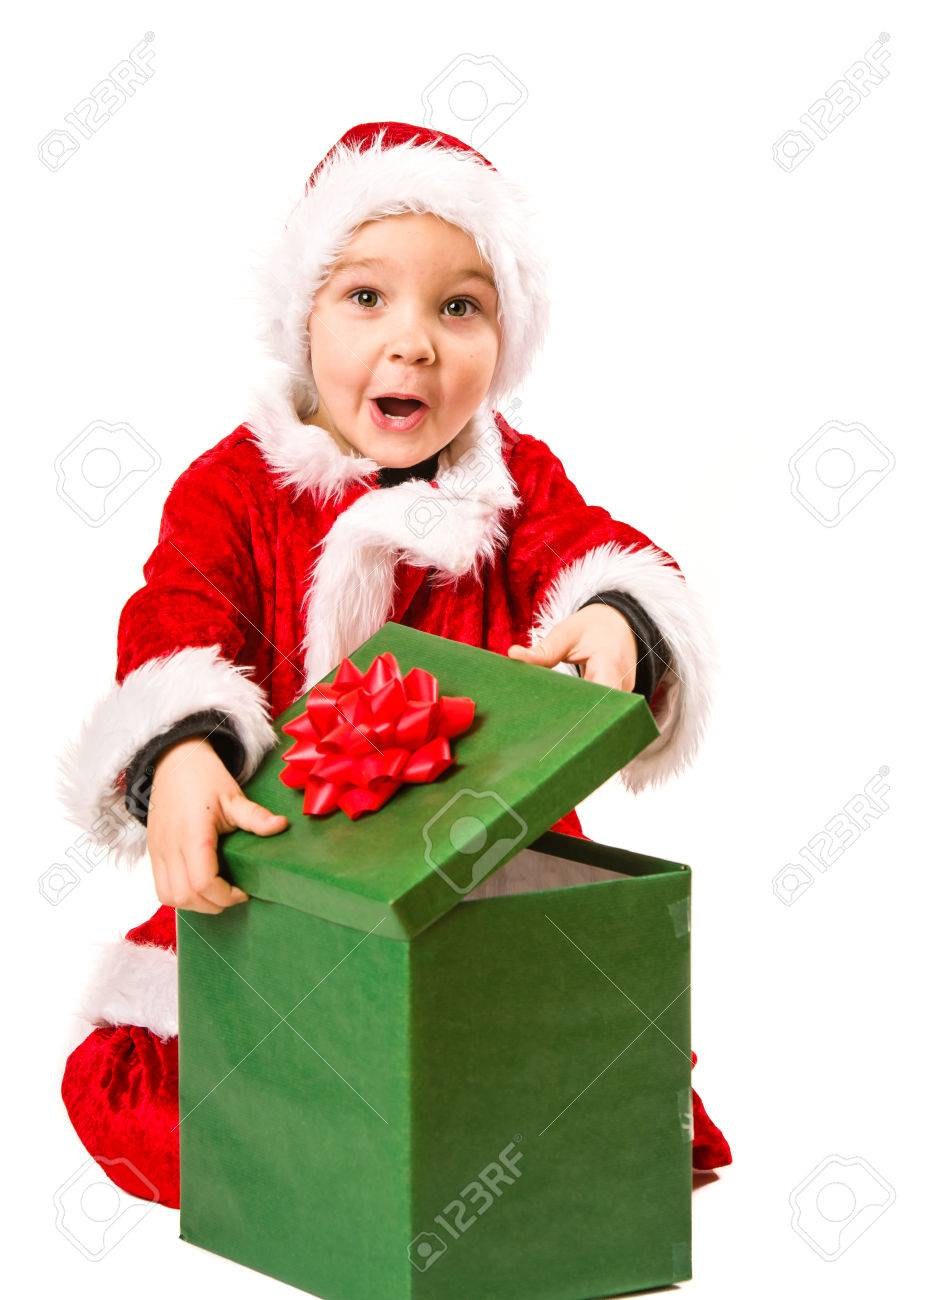 Adorable 5 Year Old Boy Wearing Santa Claus Costume, He Opens ...